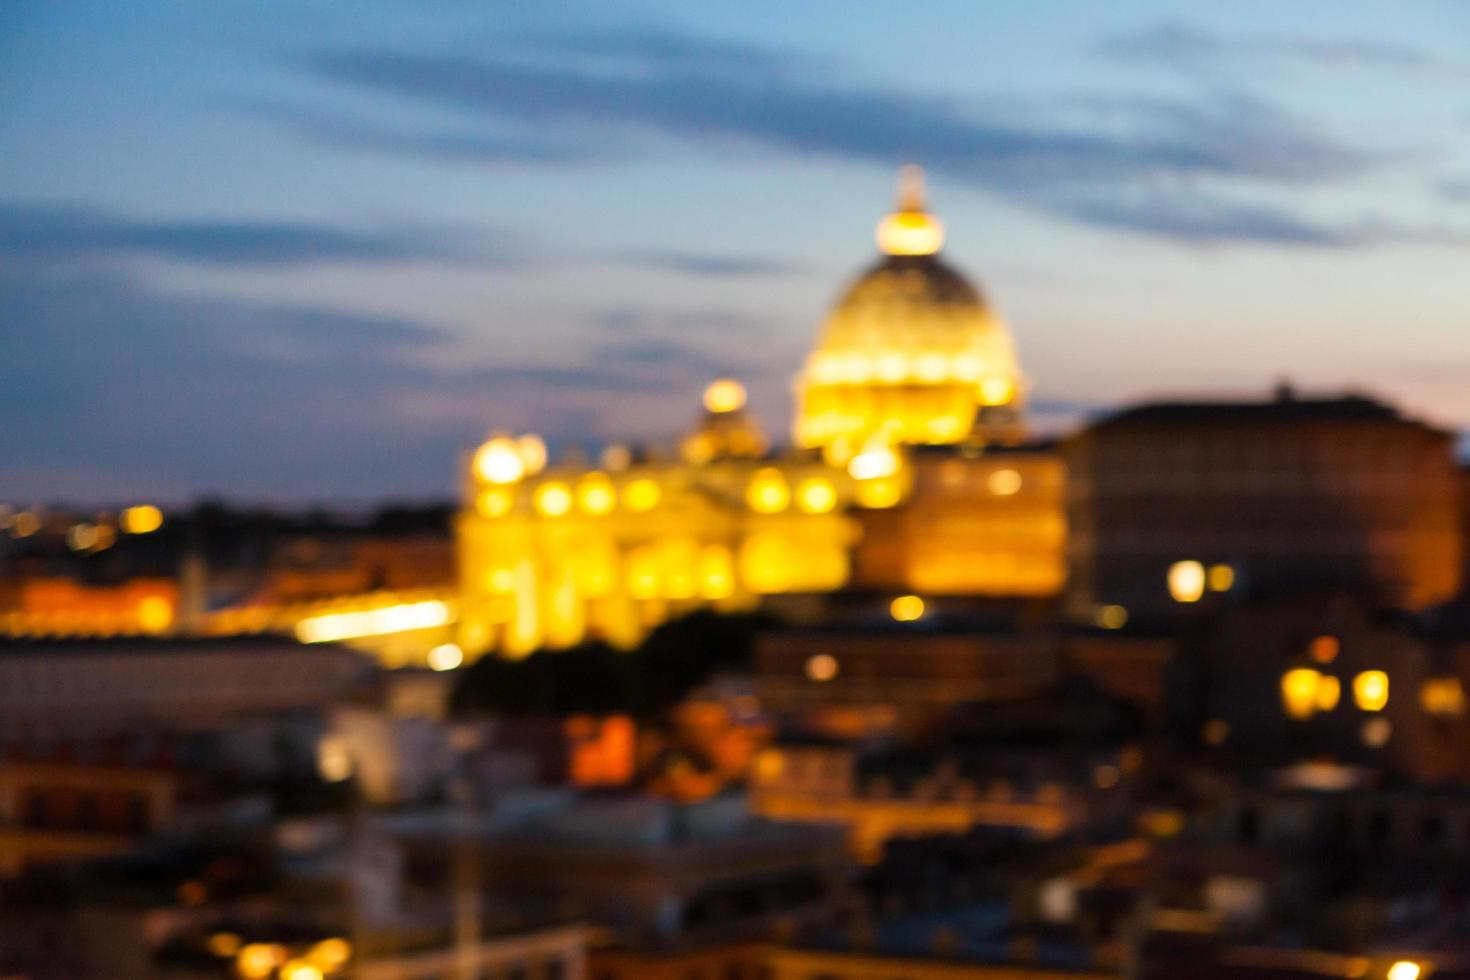 Blurry city lights with a domed building photo